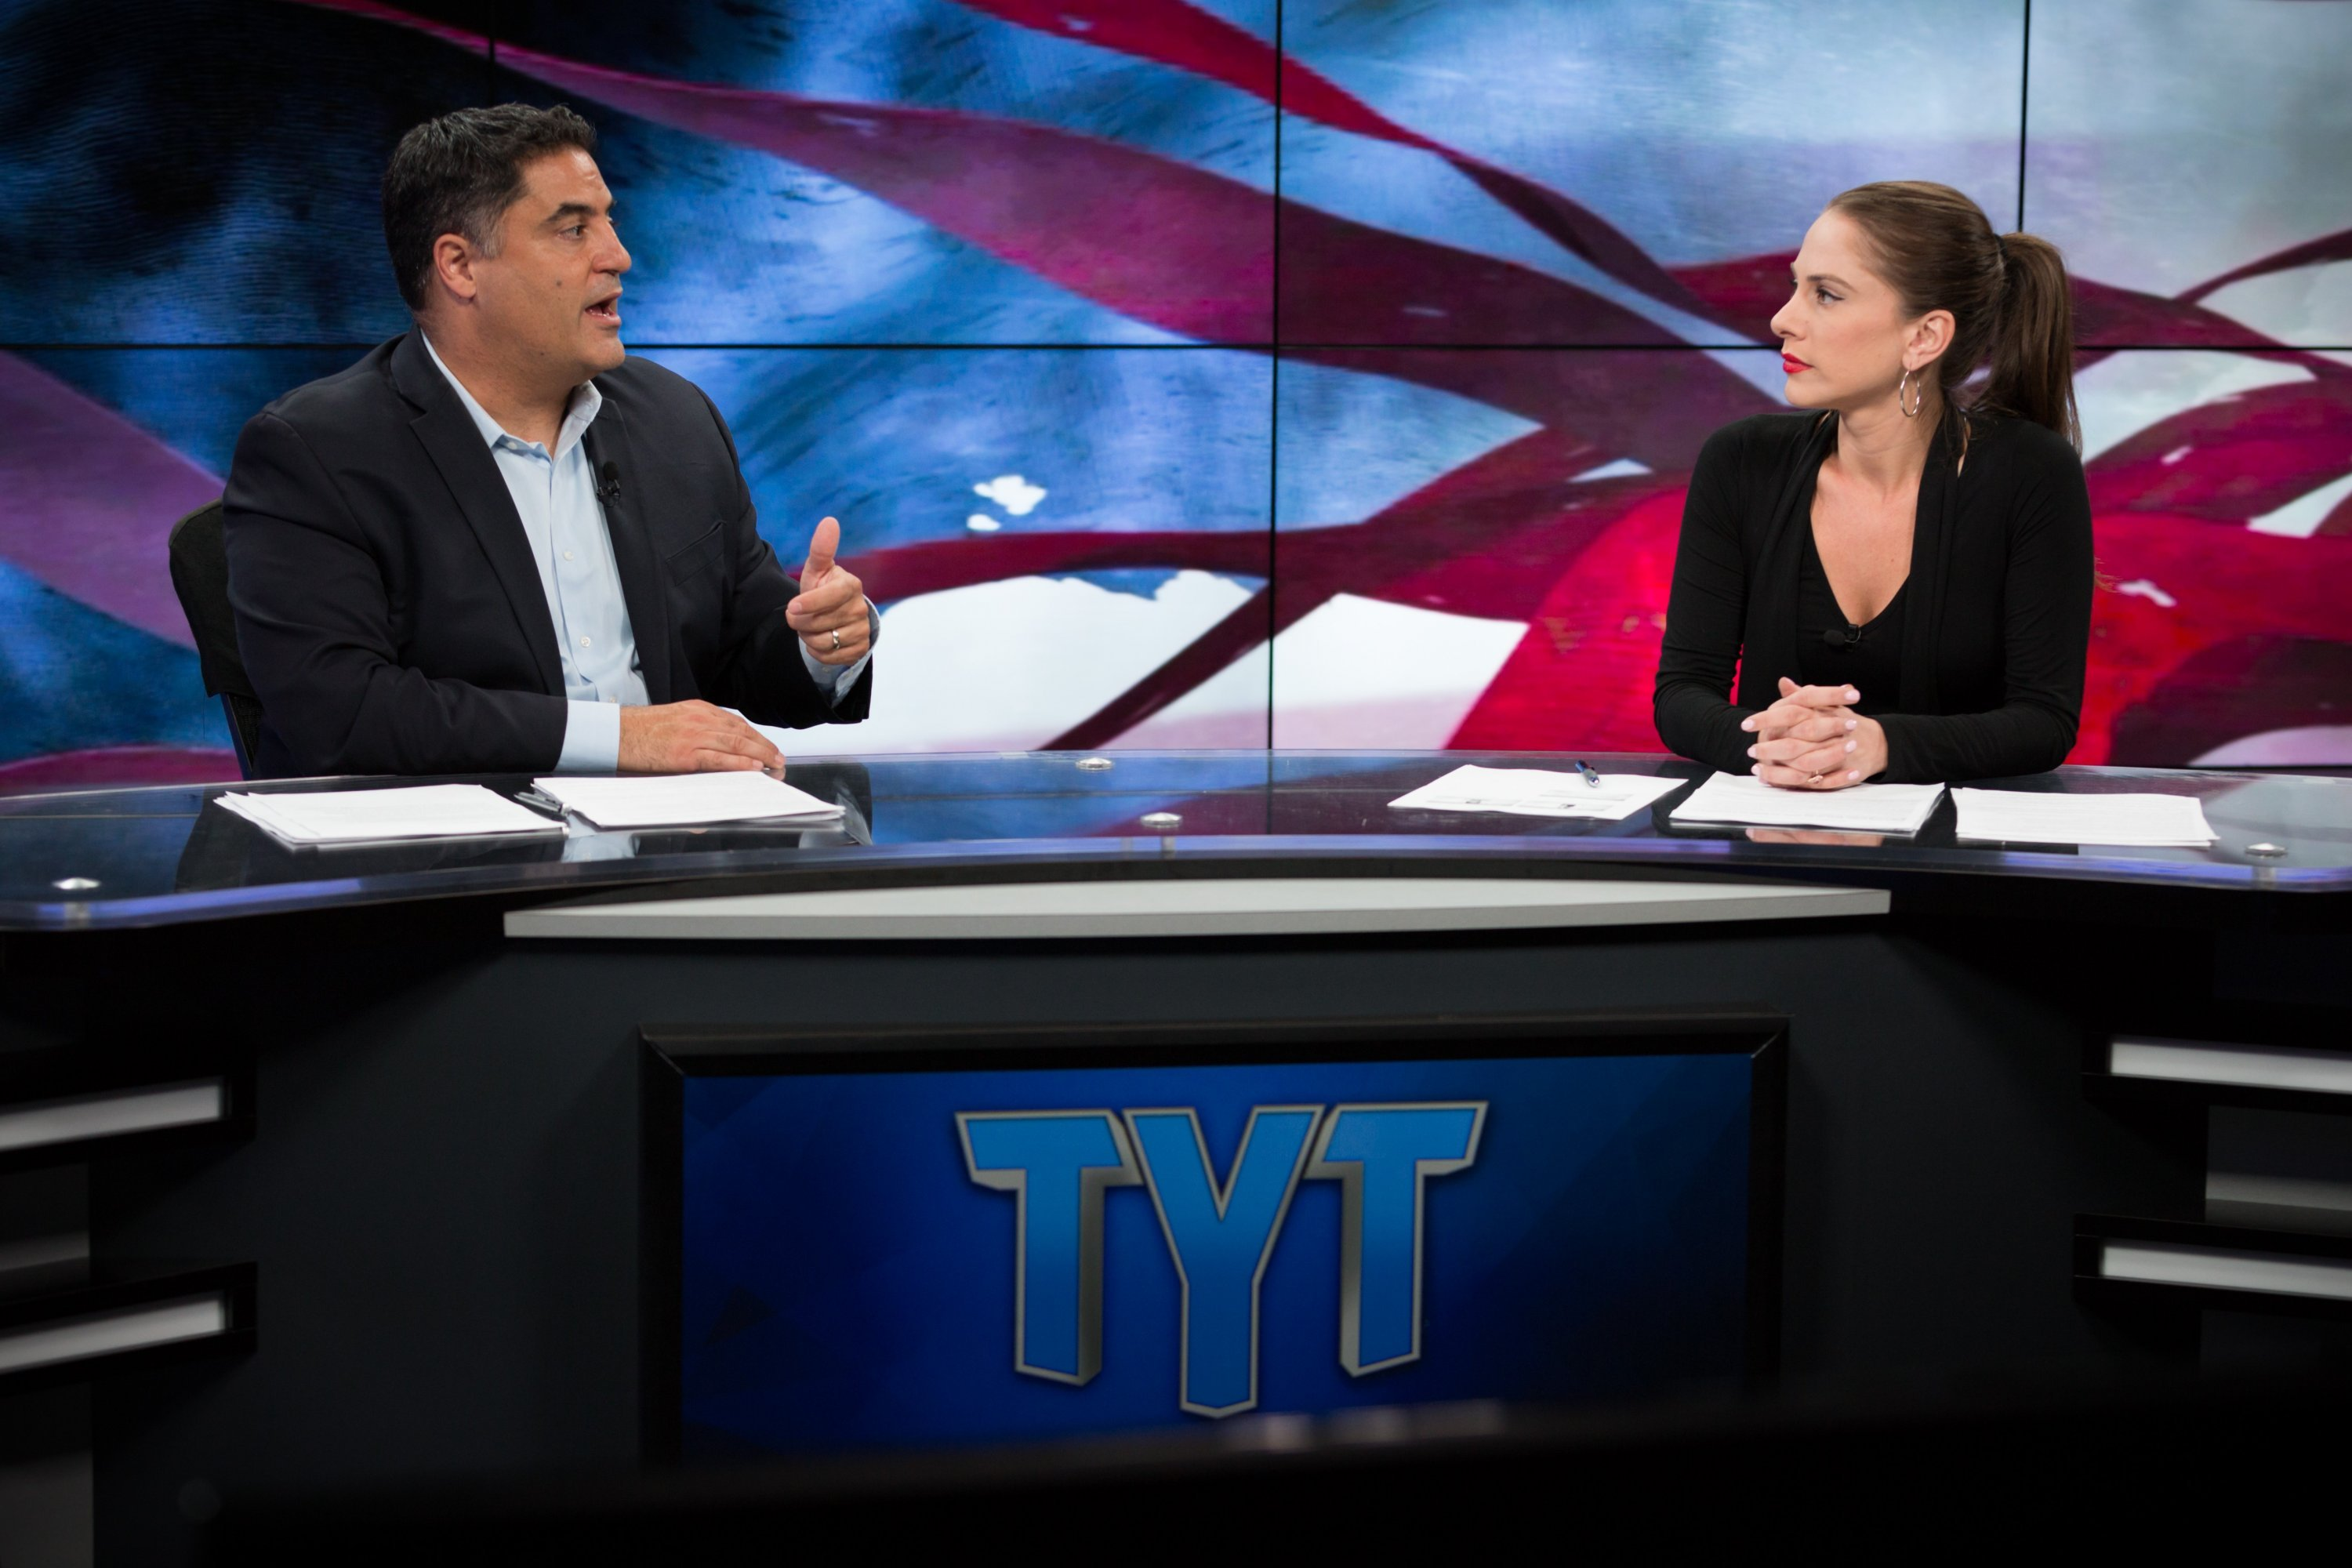 Uygar and co-host Ana Kasparian in TYT's Culver City studio. Photo by Cassandra Hanks.